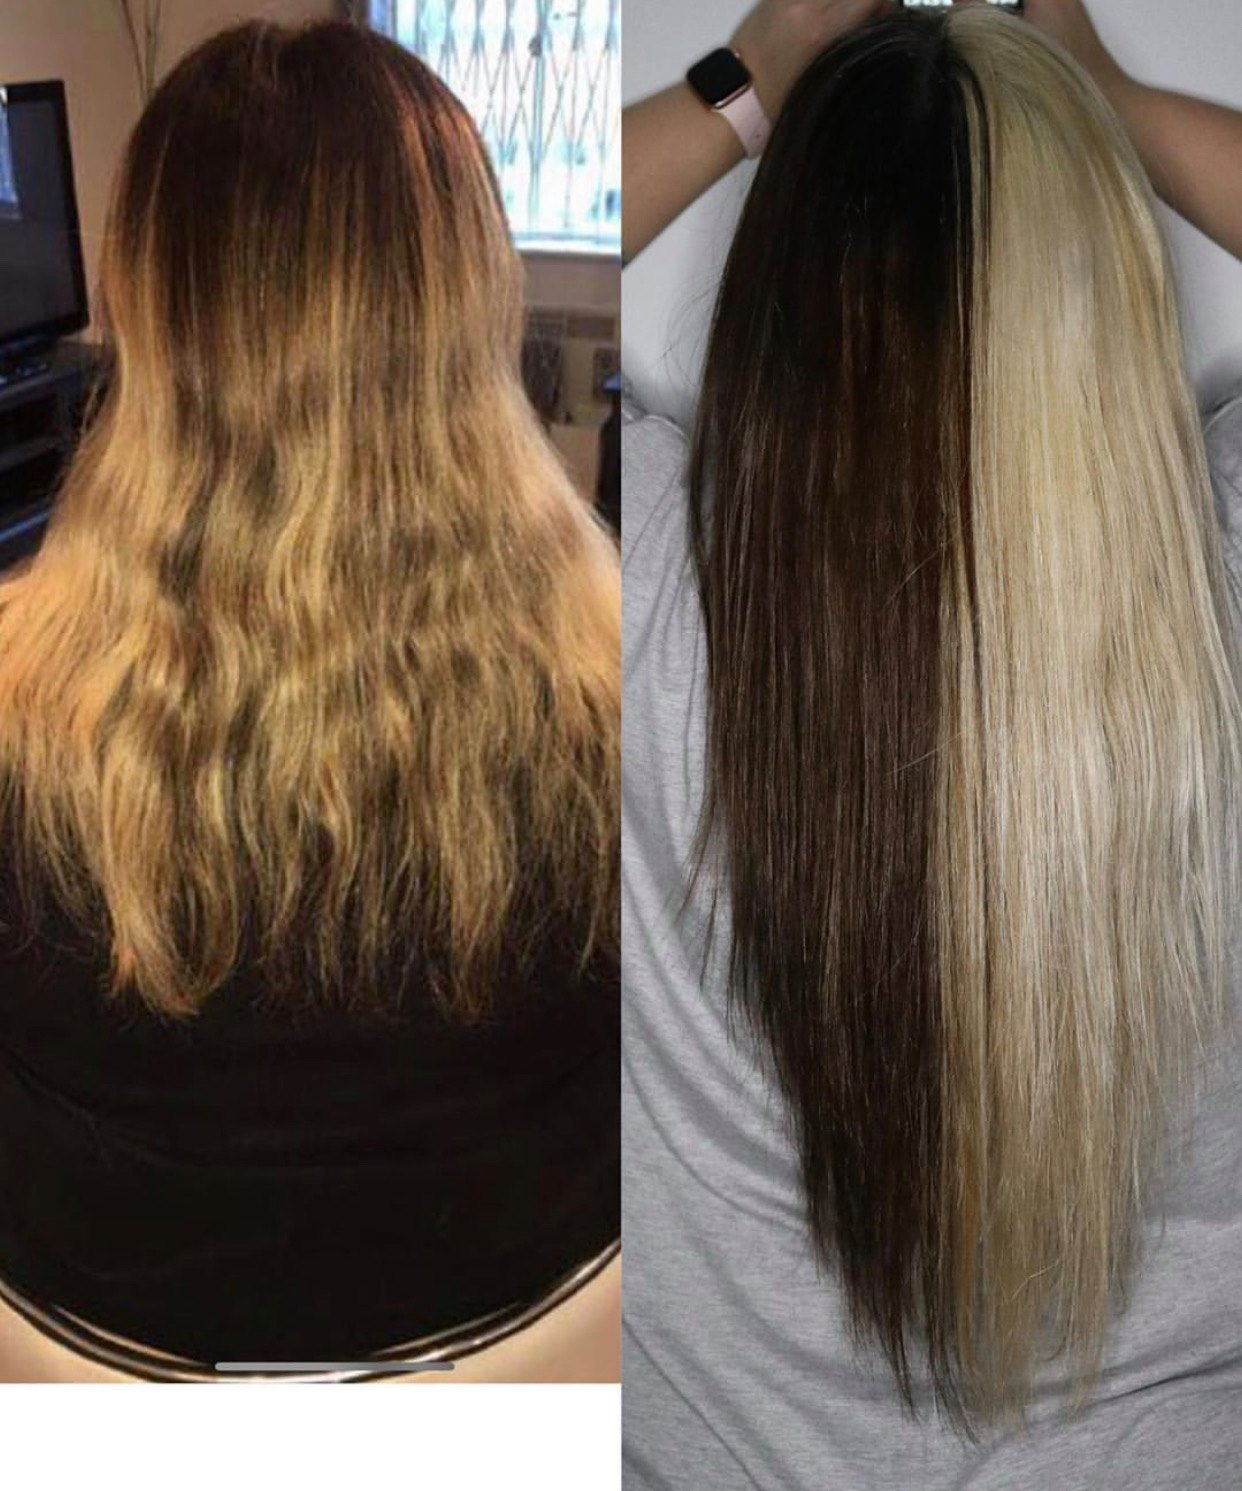 Before and after nano ring hair extensions. Split dye hair. Blonde brunette dark brown. Hair growth techniques lee stafford treatment shampoo conditioner. How to grow my hair long fast faster quick quickly.